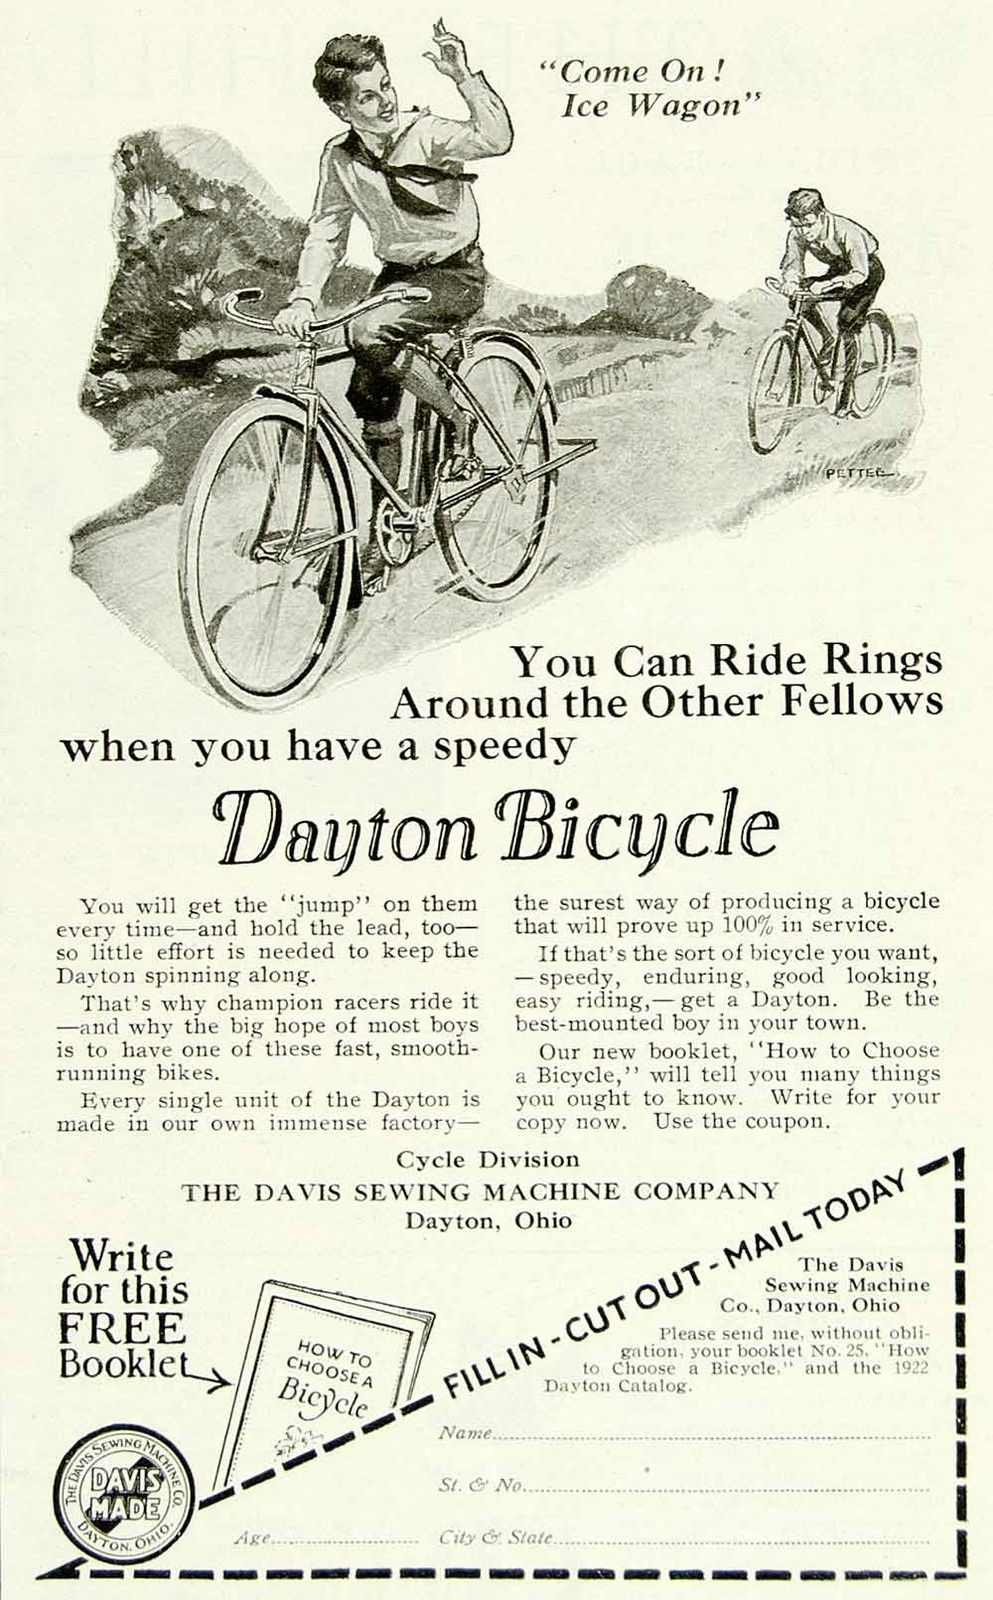 dayton bicycle